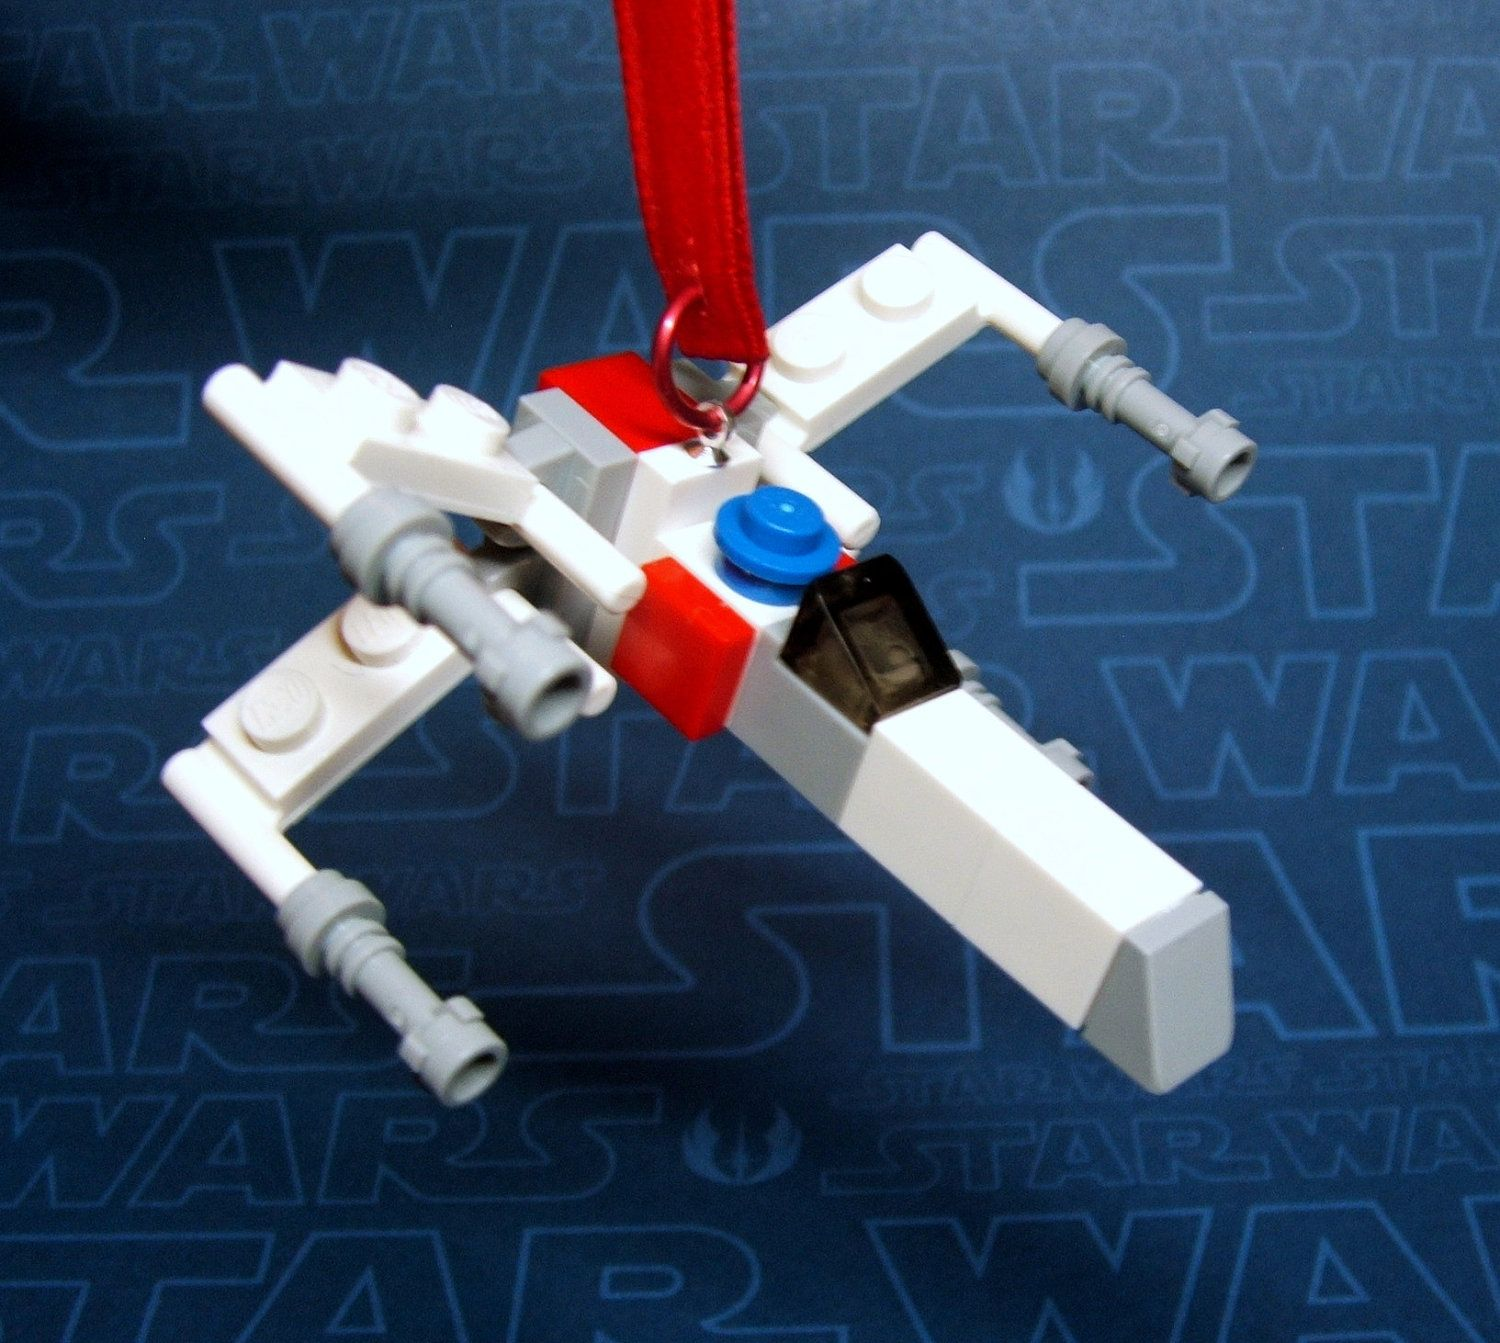 Xwing starfighter star wars christmas ornament made from genuine